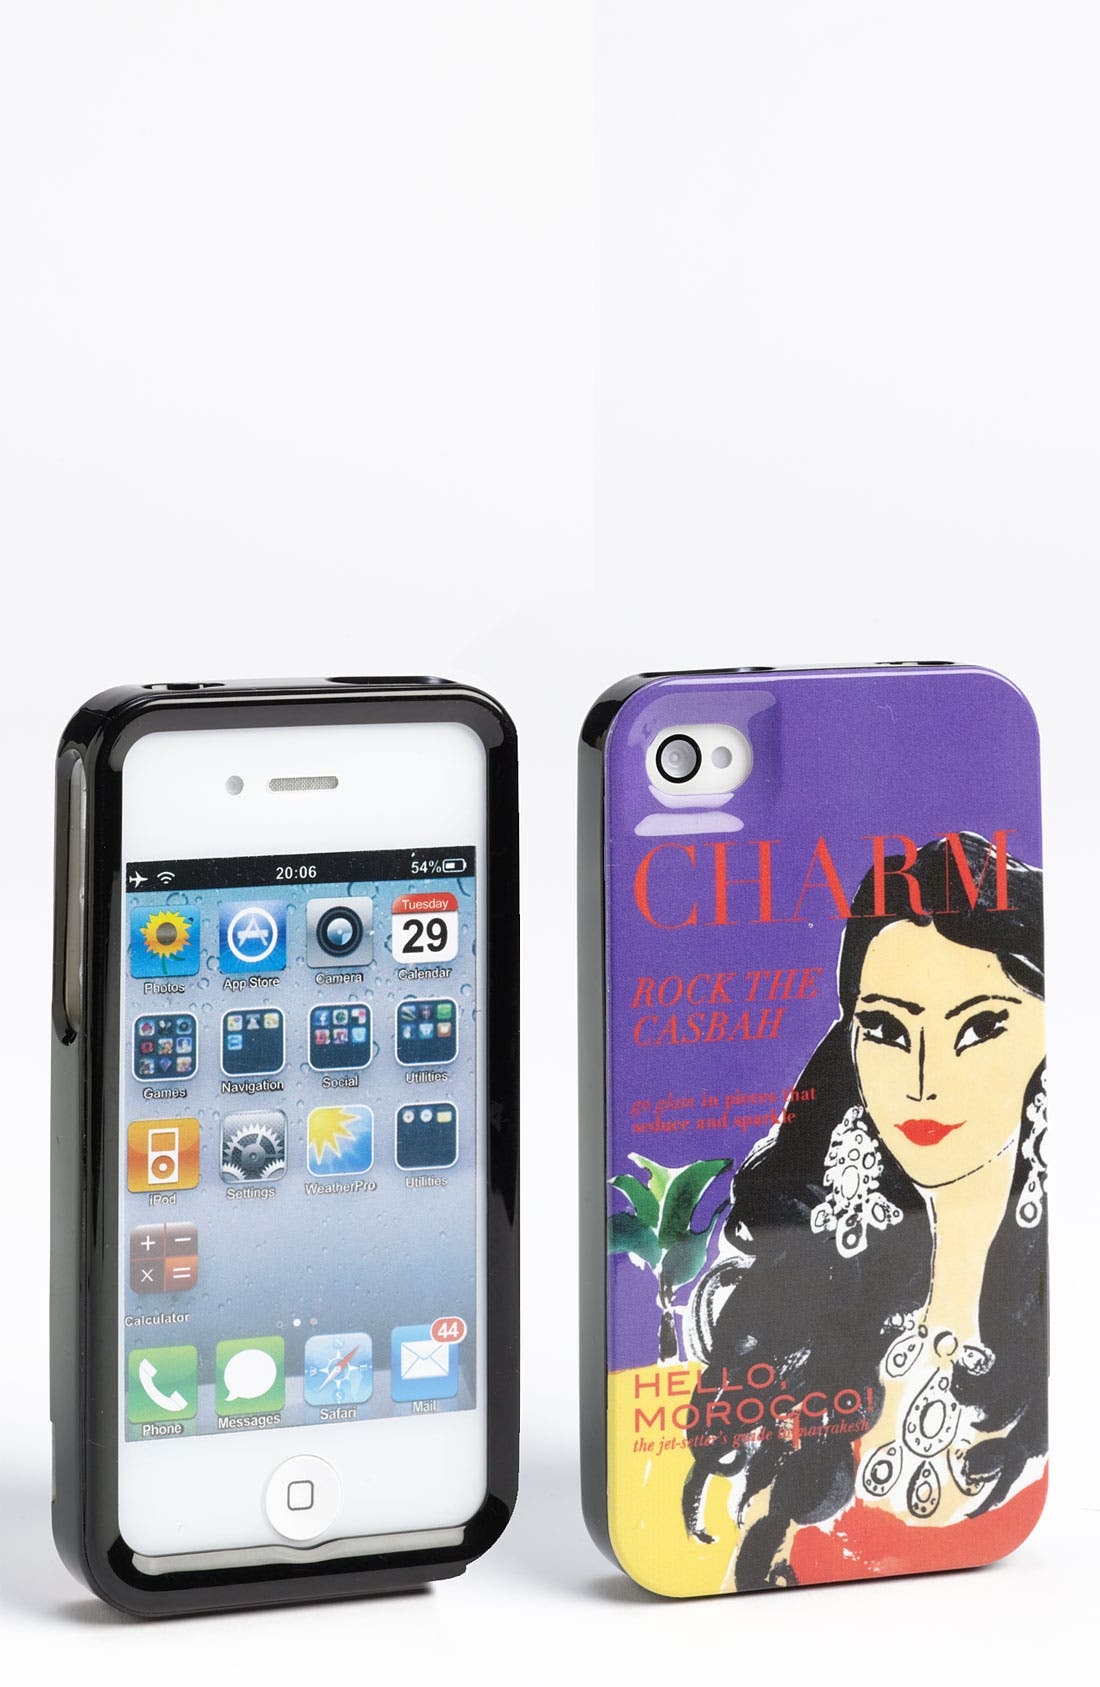 Main Image - kate spade new york 'charm' iPhone 4 & 4S case